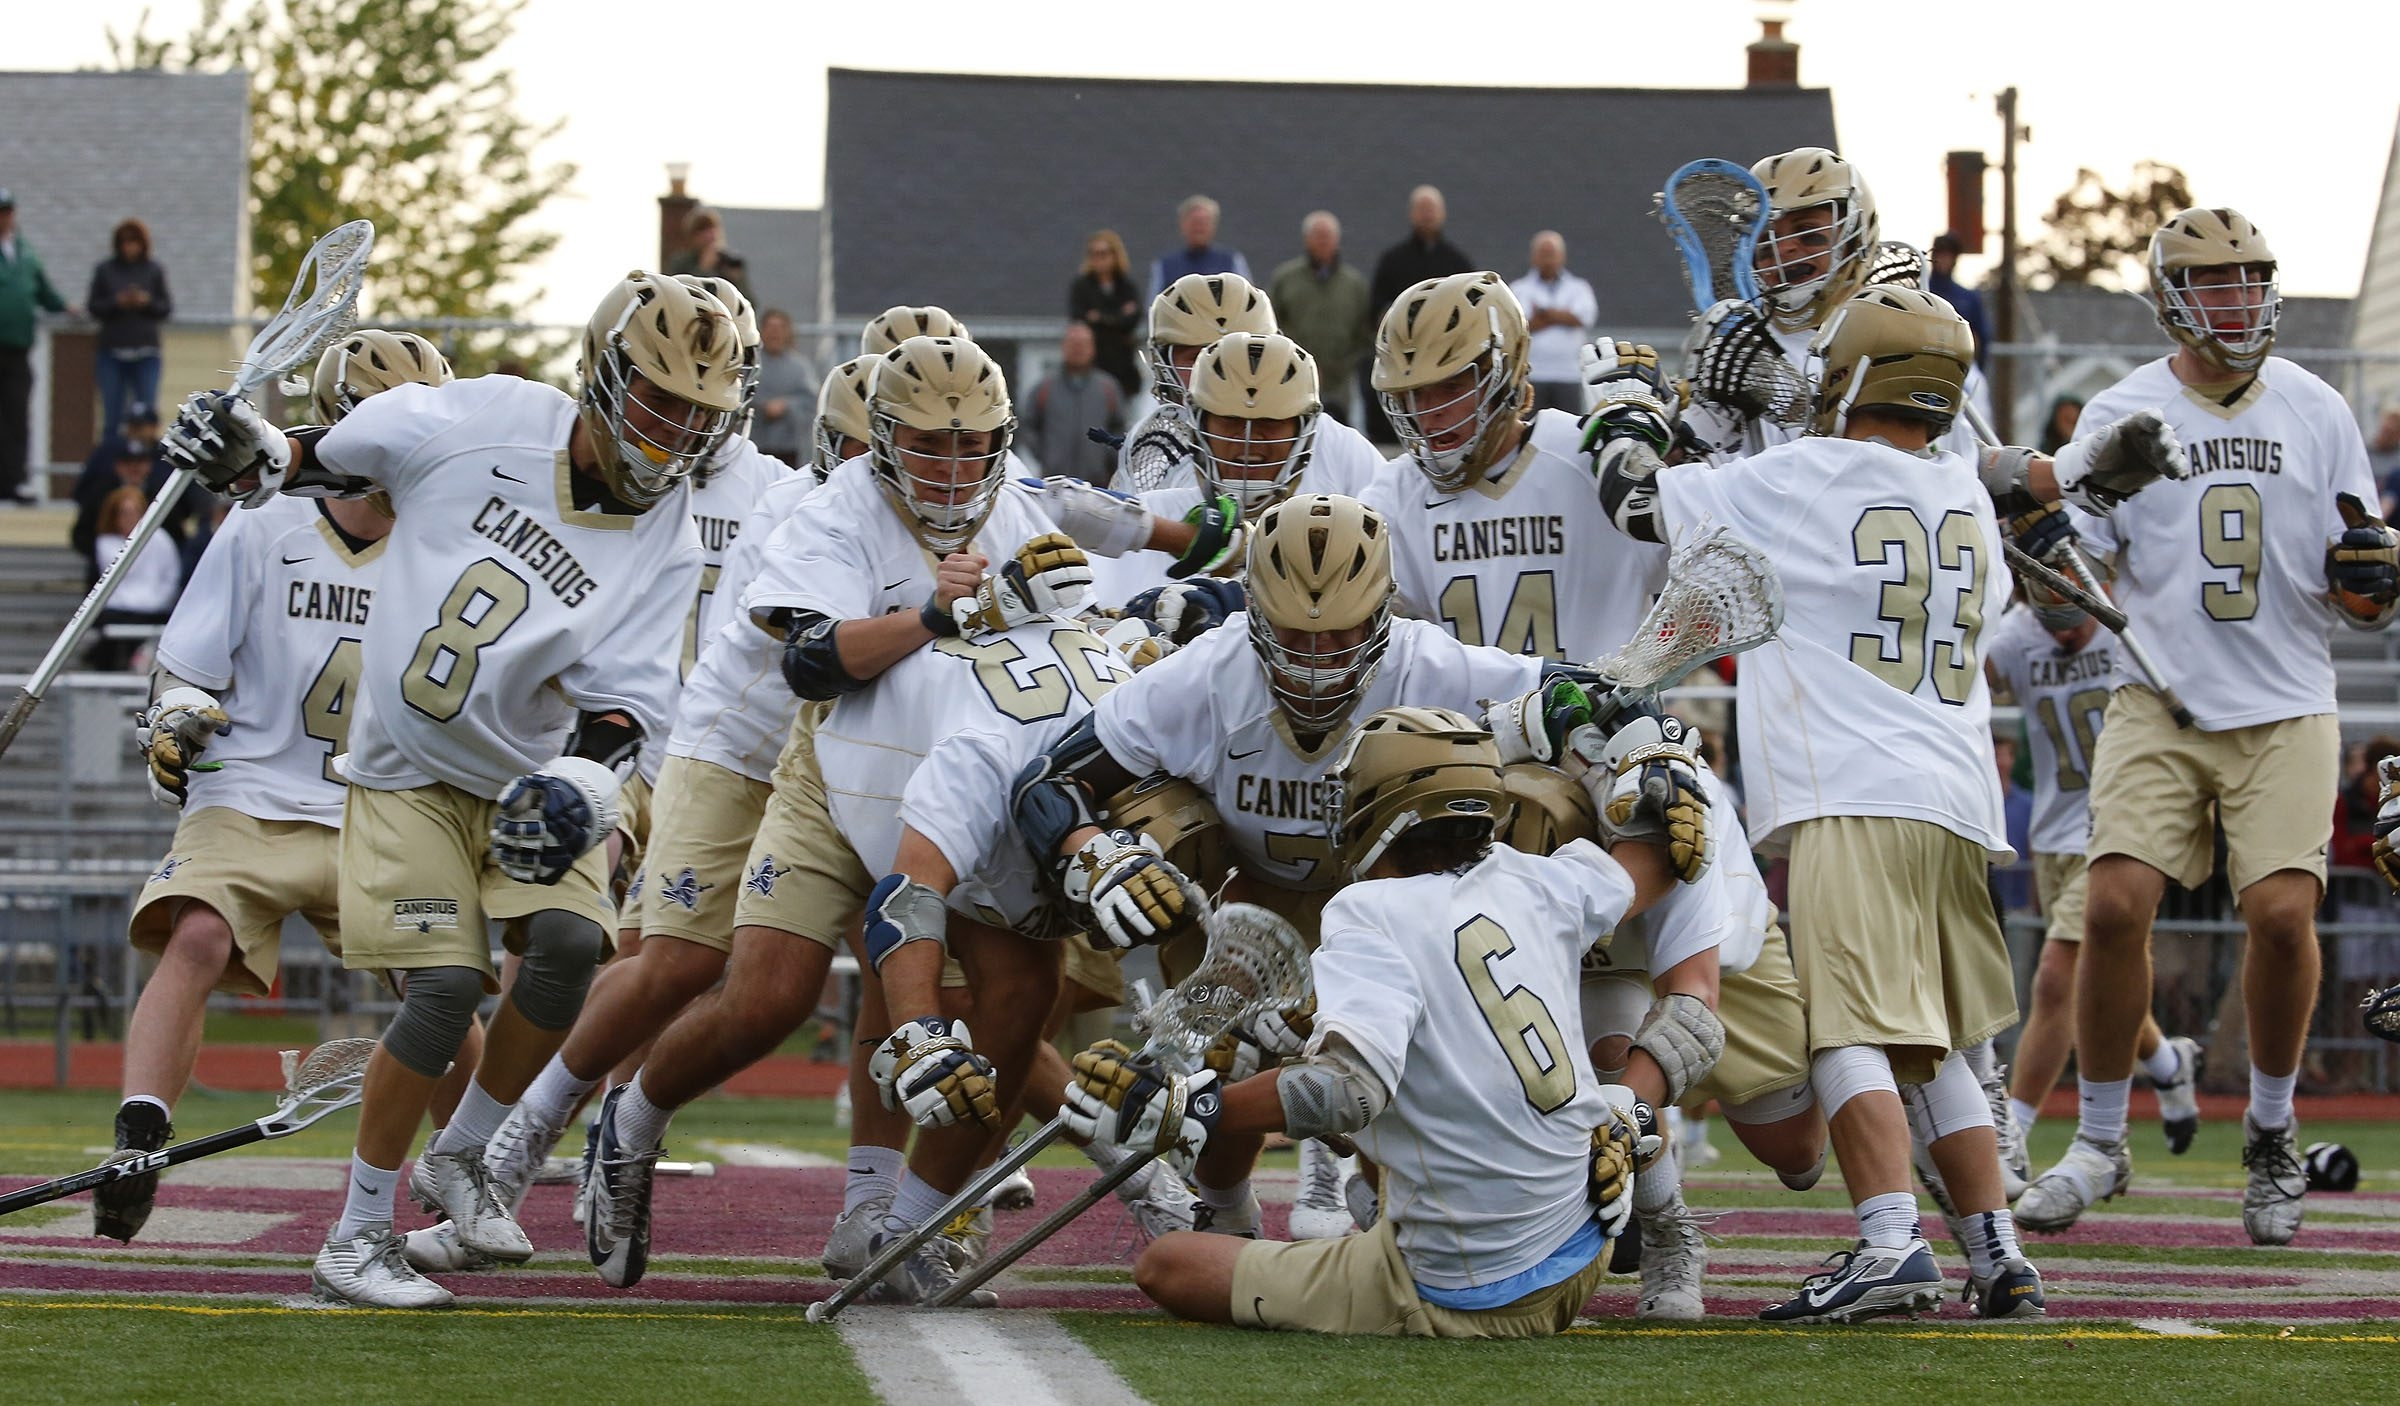 Canisius players mob Reid Martin (6) after he scored the winning goal in the fourth overtime to beat Nichols, 7-6.